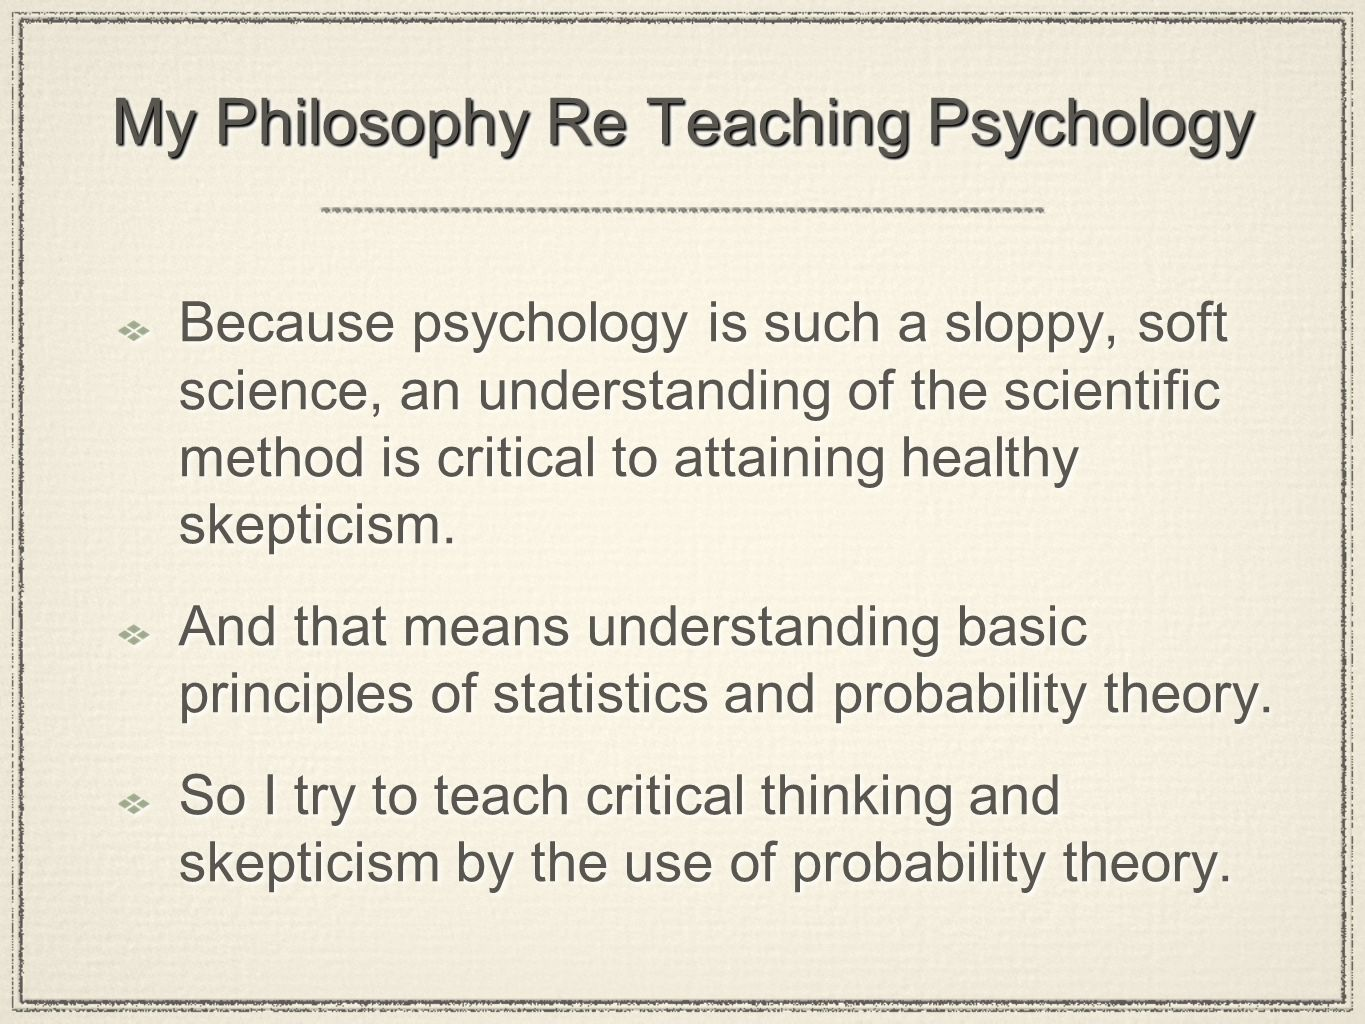 My Philosophy Re Teaching Psychology